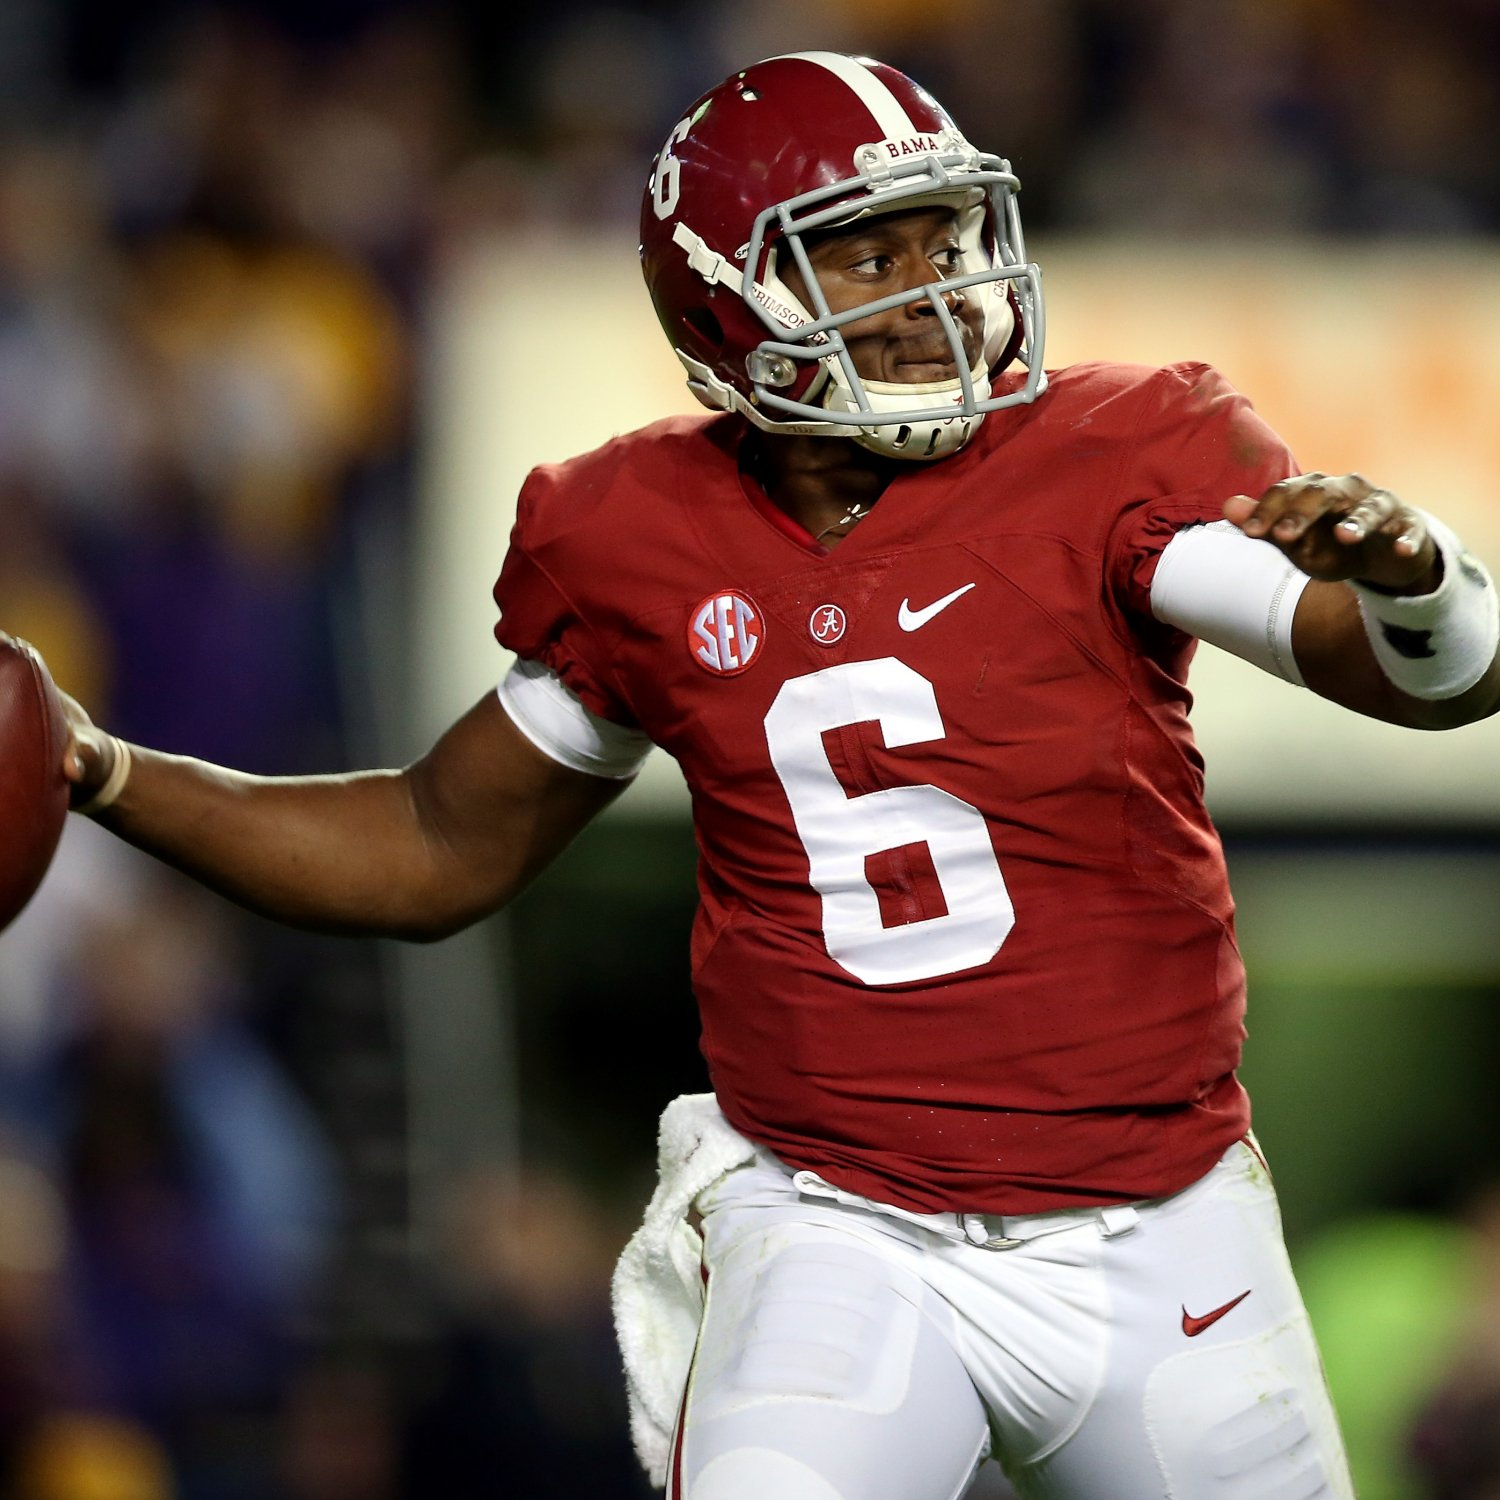 College Football Scores College Football Matchups College Football News College Football Odds College Football Expert Picks and more provided by VegasInsidercom